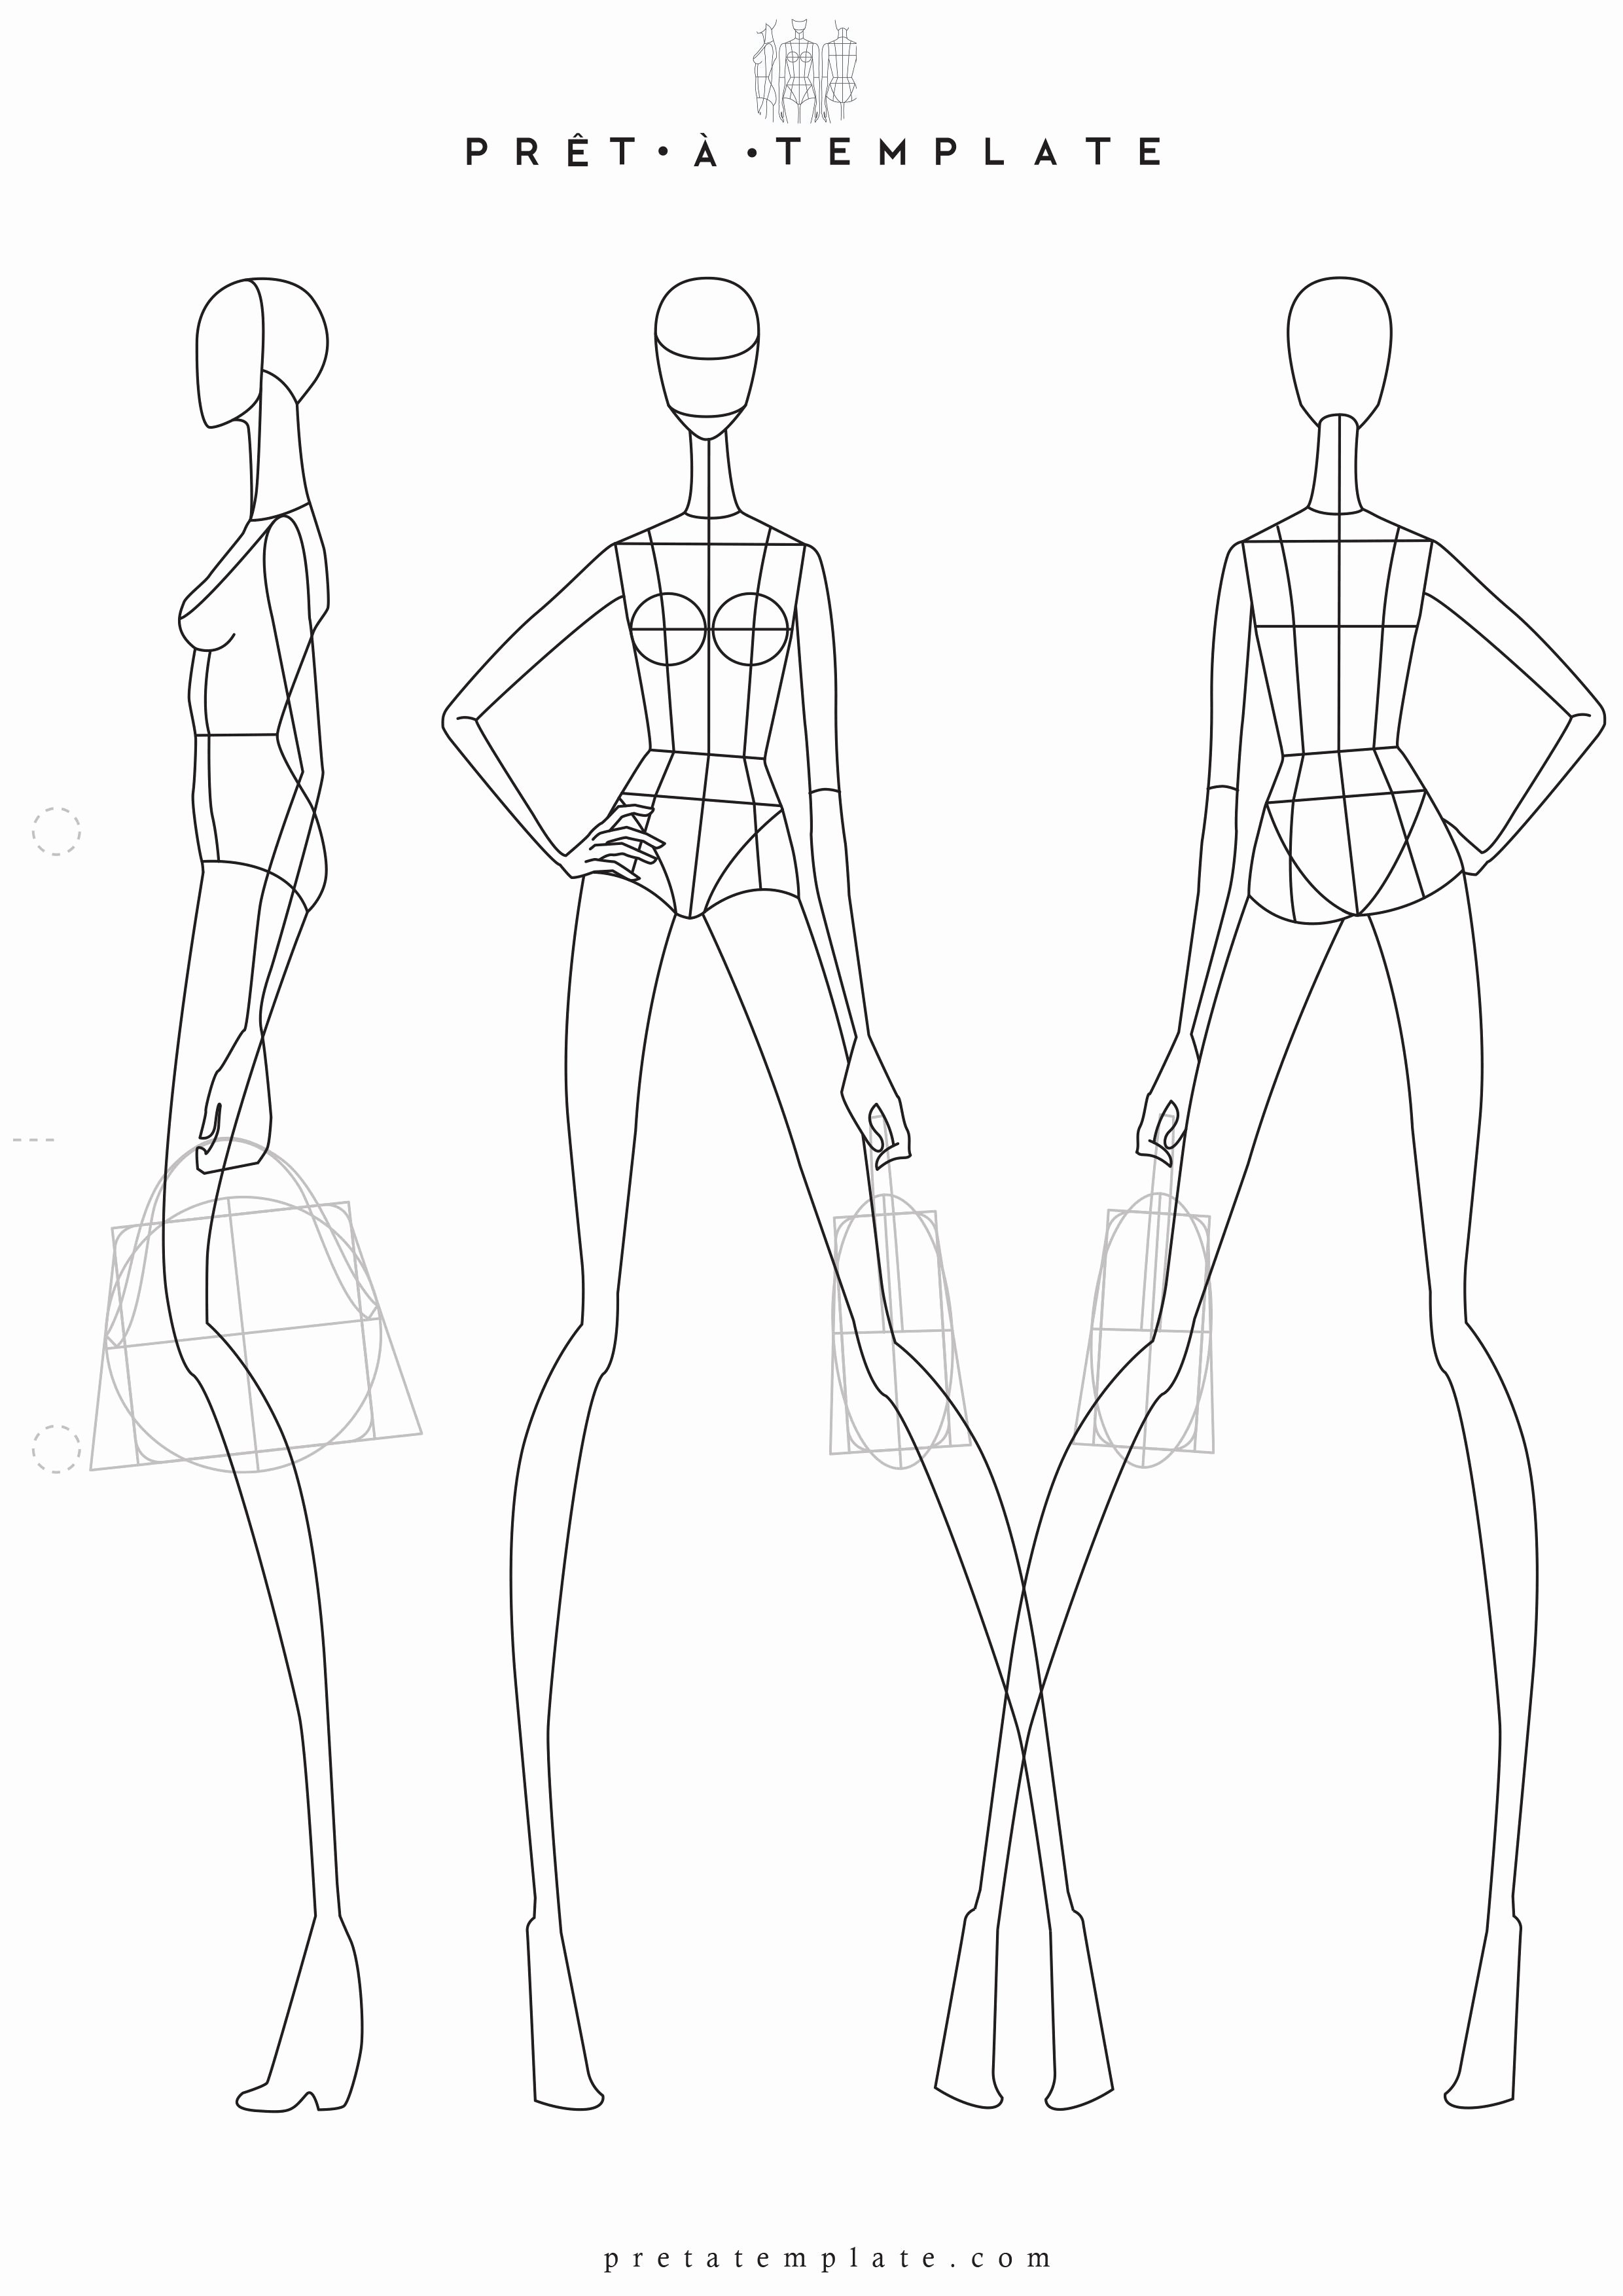 Model Sketch Template Elegant Woman Body Figure Fashion Template D I Y Your Own Fashion